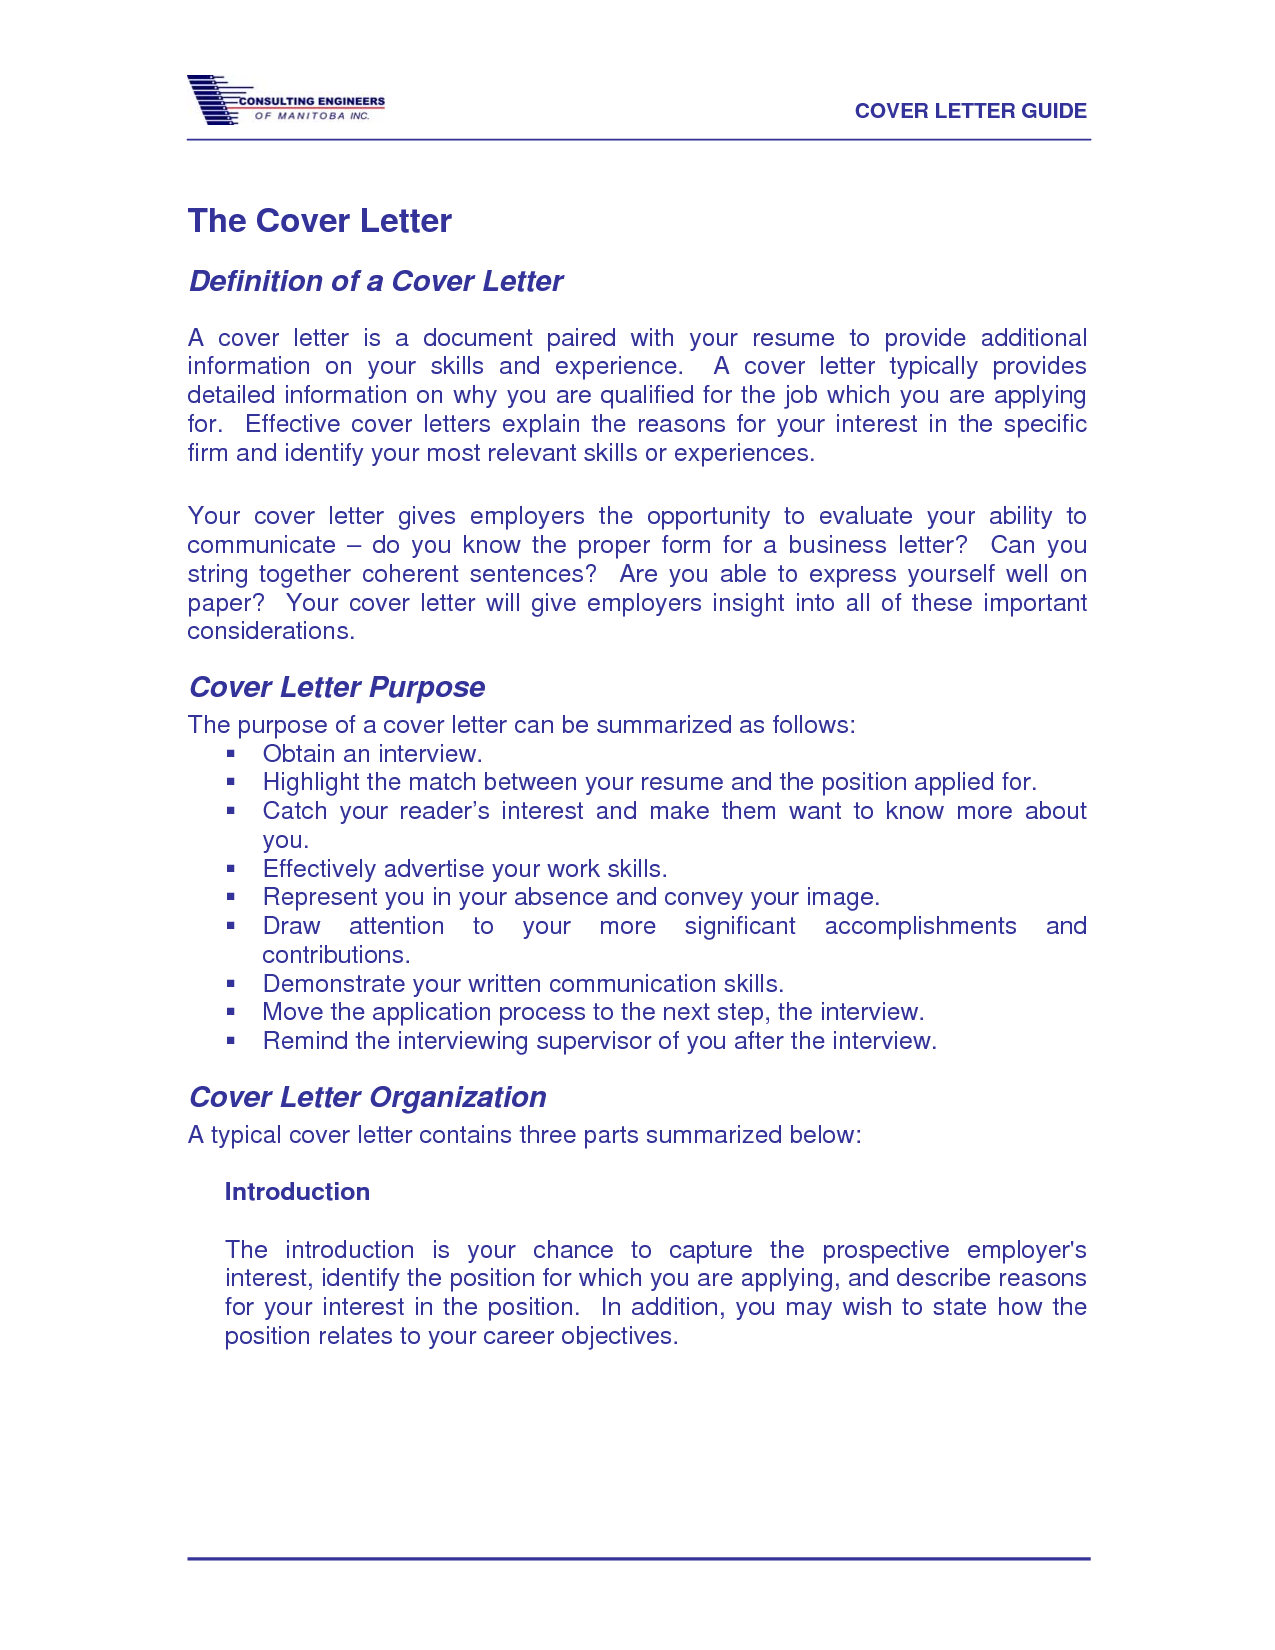 Resume Definition Job Letter Means Cover Definition Solicited Job Application Dgereport